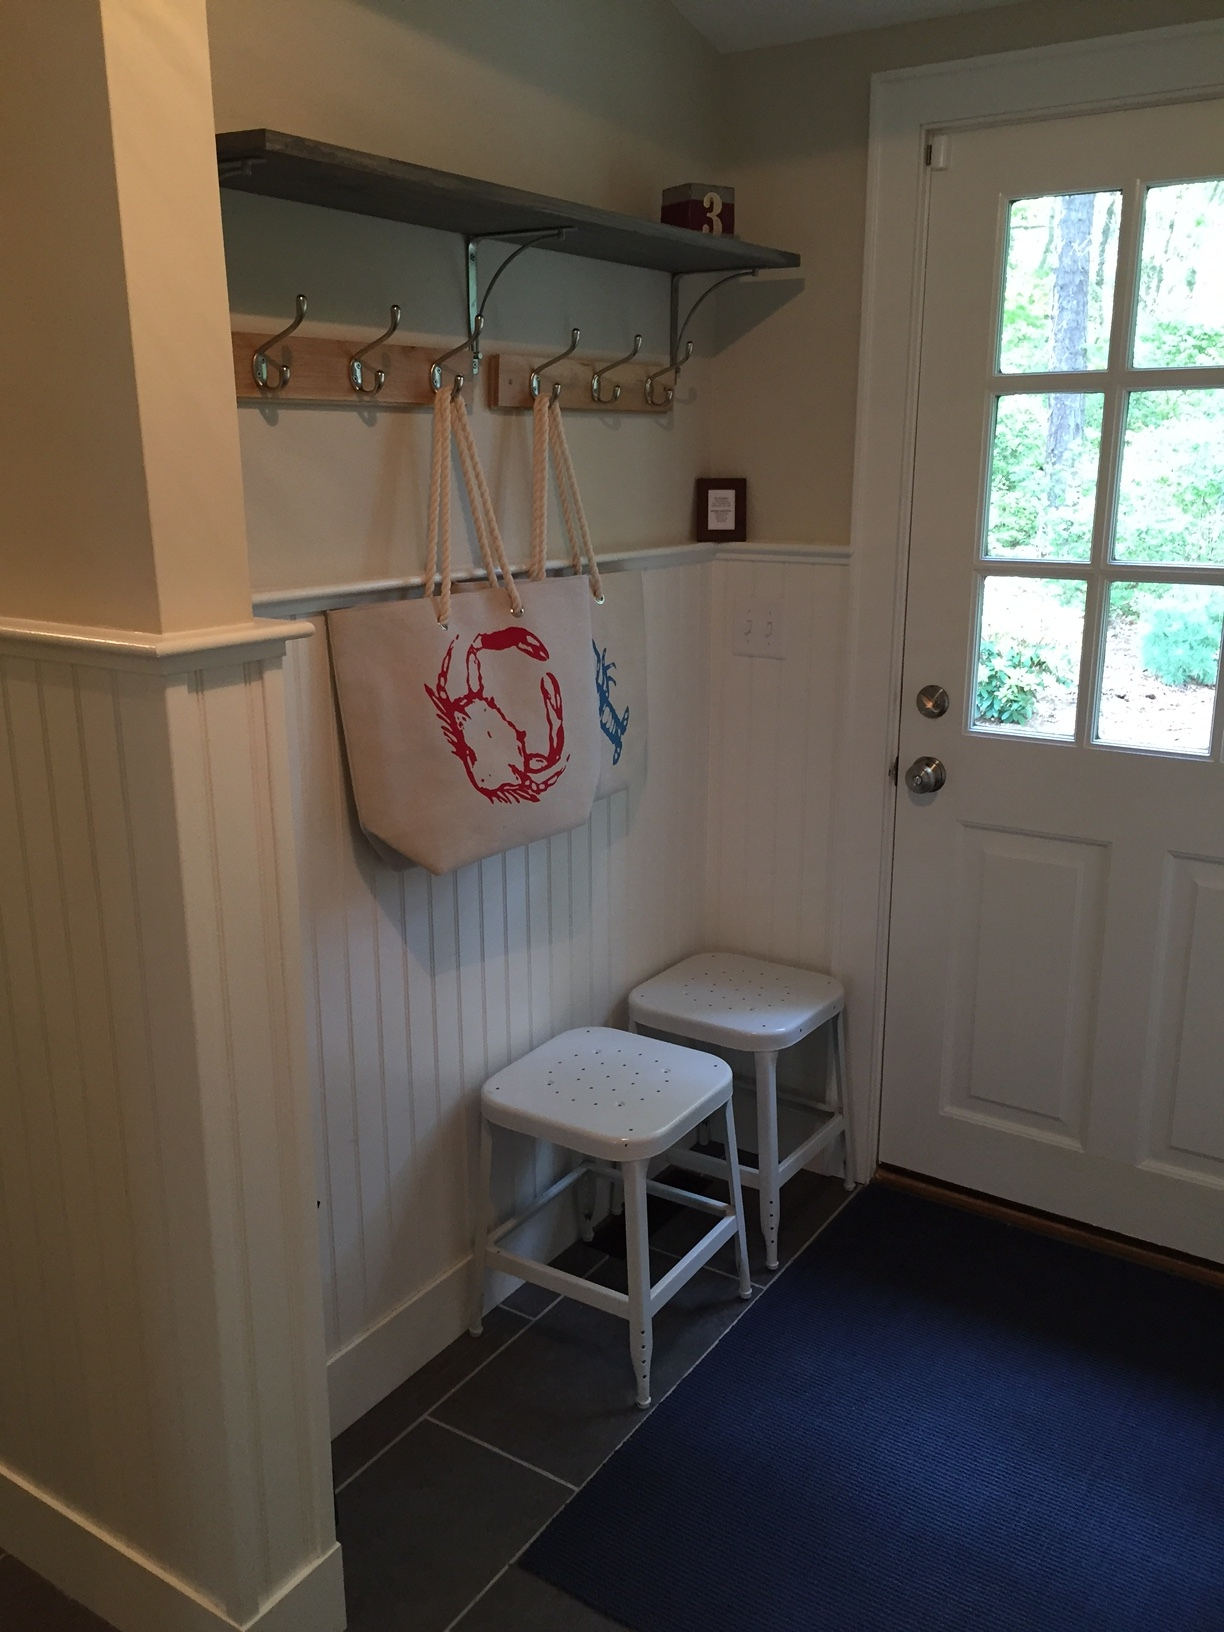 The mudroom on the way to the outdoor shower. So nice of the owners to leave beach bags and beach towels (not pictured) for guests to use.